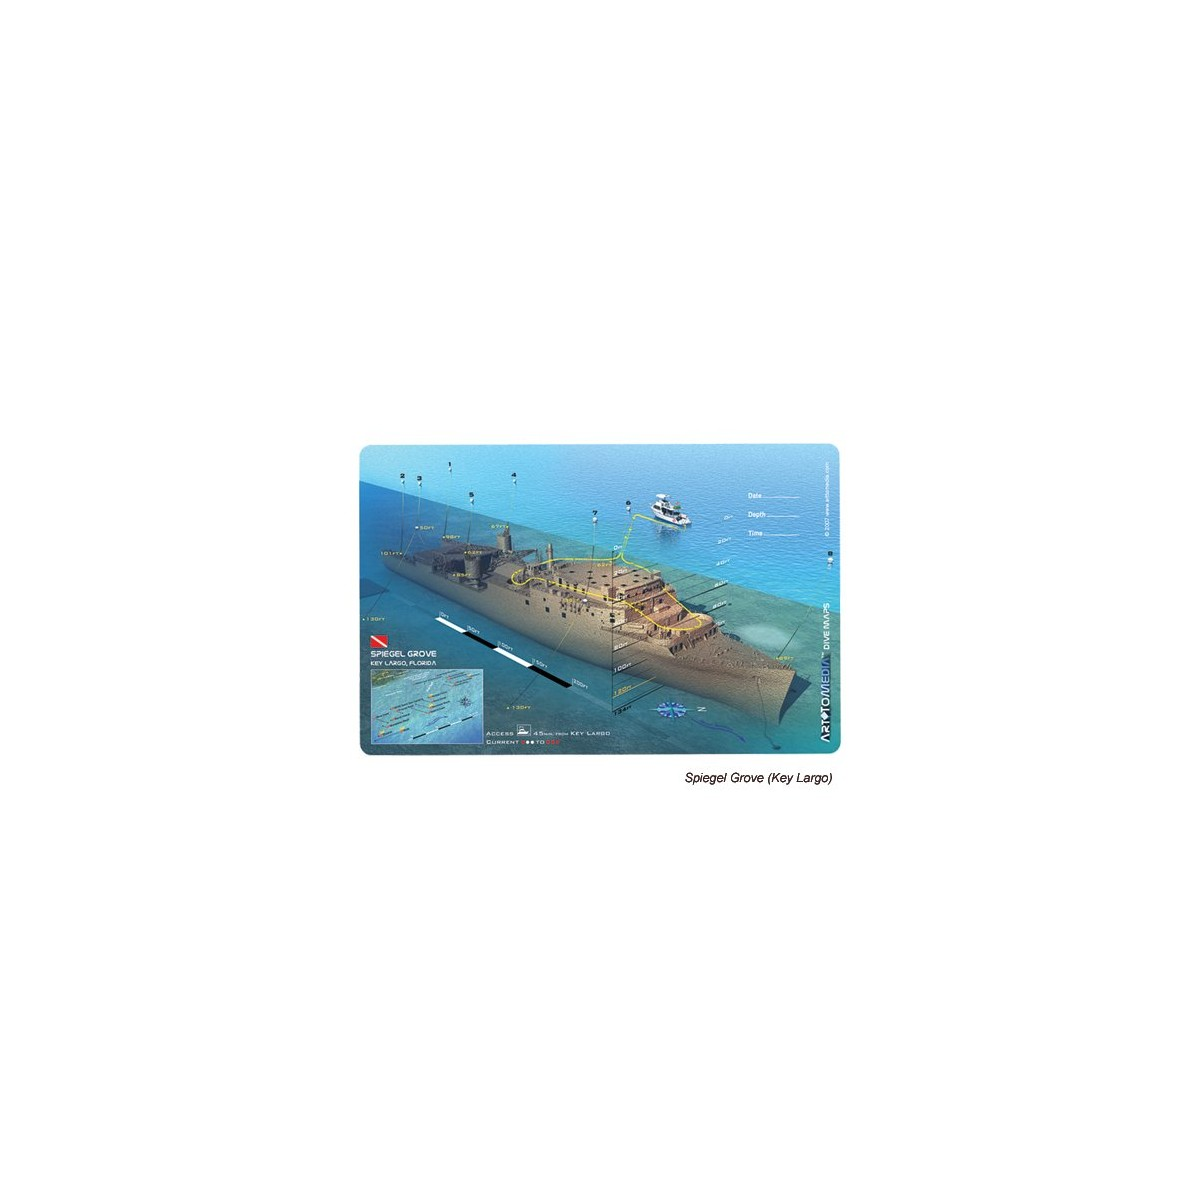 Spiegel Grove in Key Largo, Florida (8.5 x 5.5 Inches) (21.6 x 15cm) - New Art to Media Underwater Waterproof 3D Dive Site Map